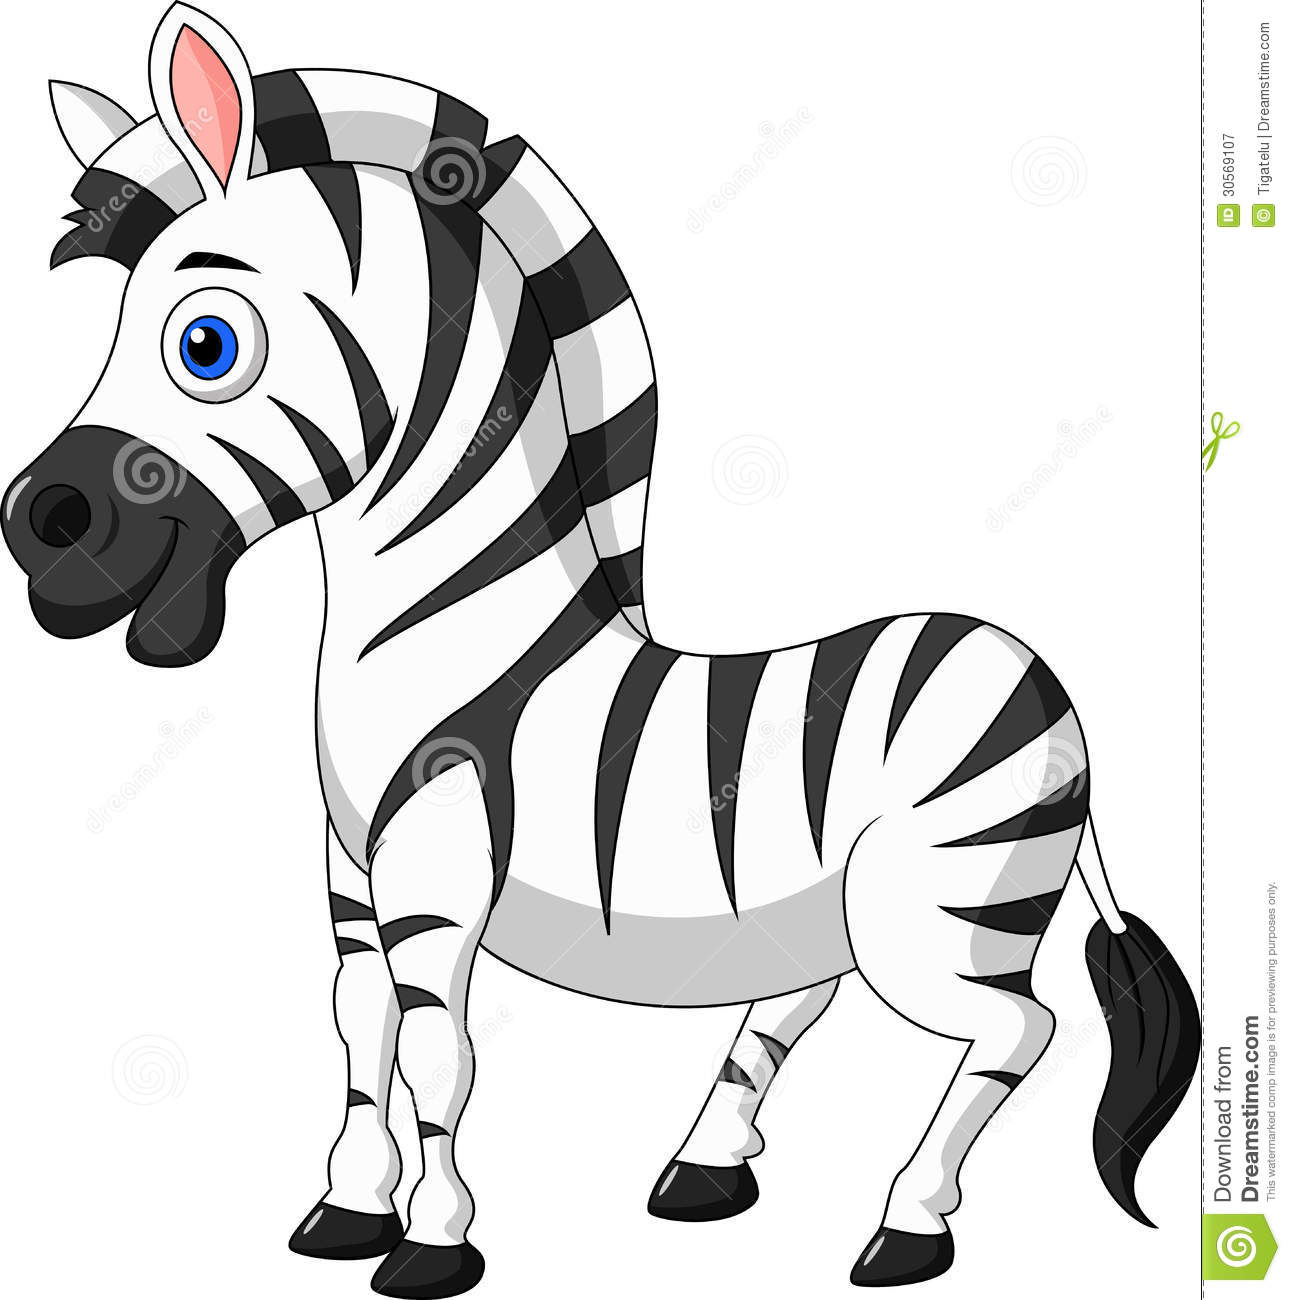 Cute zebra cartoon stock vector. Illustration of hoof ...